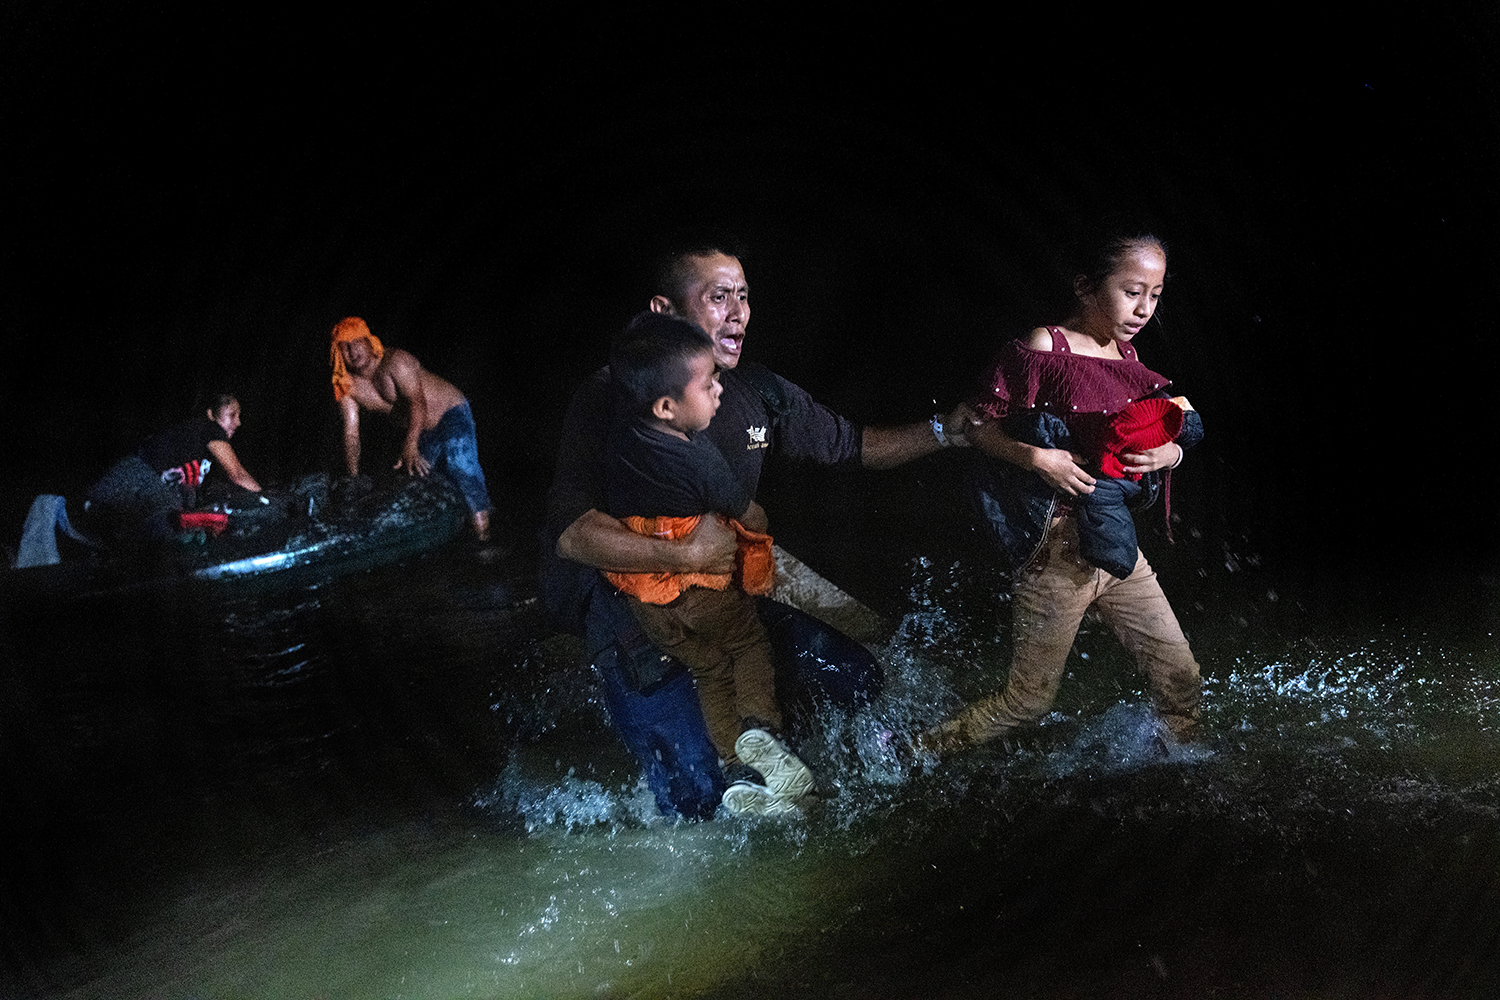 A migrant father grips his children while walking ashore on the bank of the Rio Grande at the U.S.-Mexico border in Roma, Texas, on April 14. John Moore/Getty Images